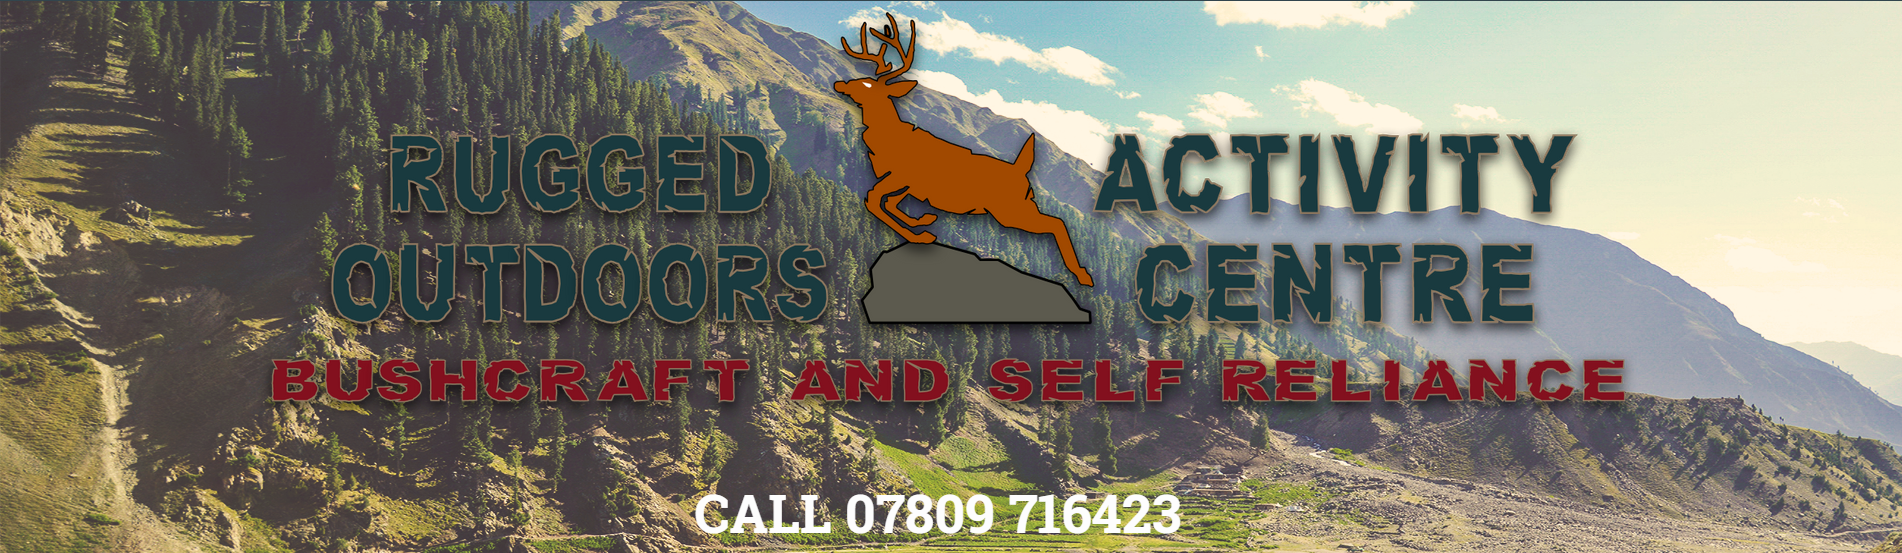 Rugged Outdoors Activity Centre